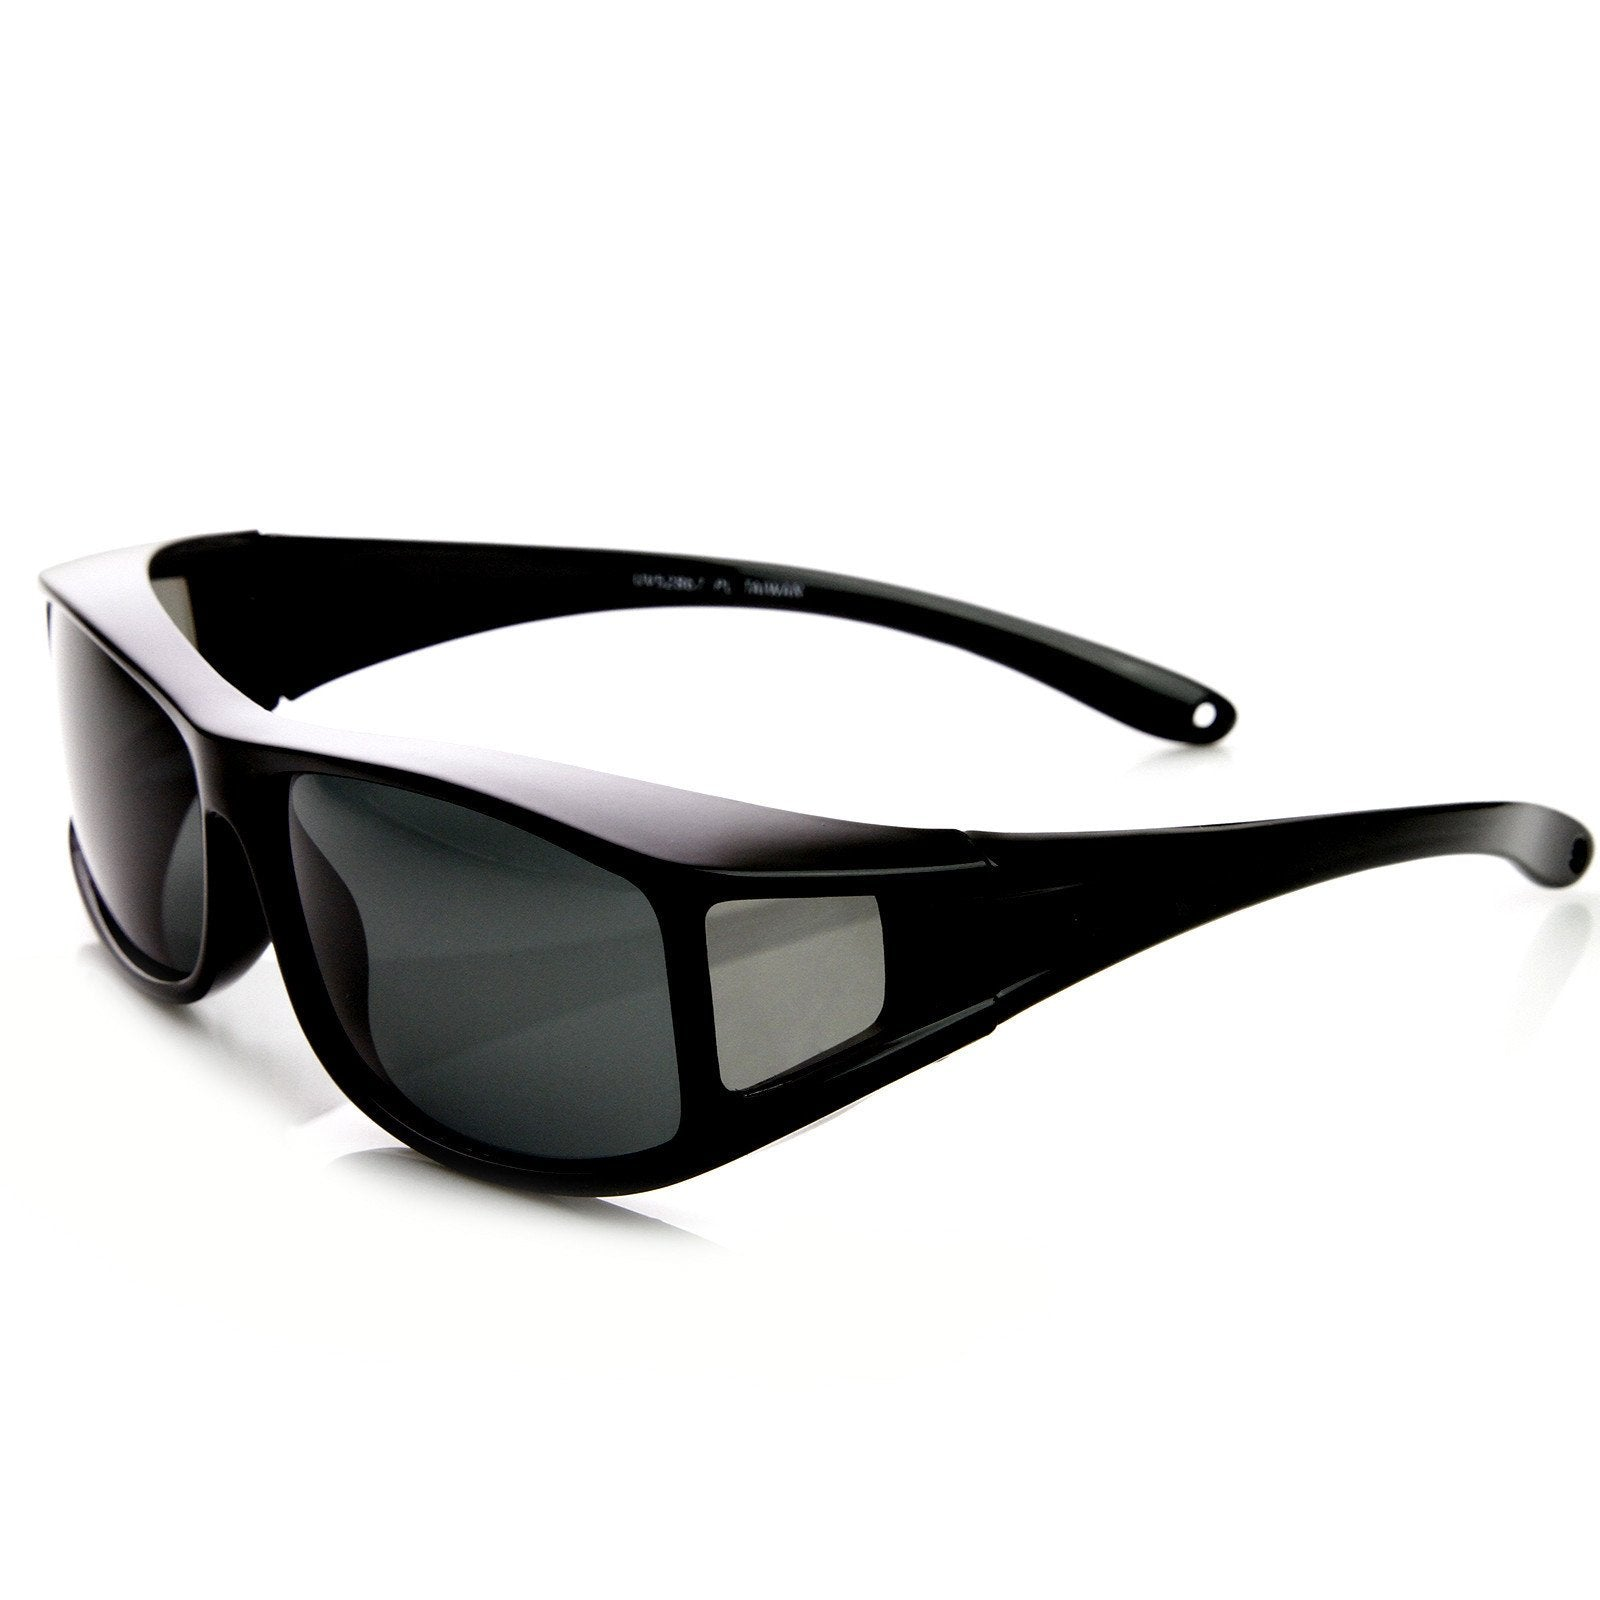 Full Sunglasses Around Lens Goggles 8880 Wrap Protection Polarized 3R4AjLq5